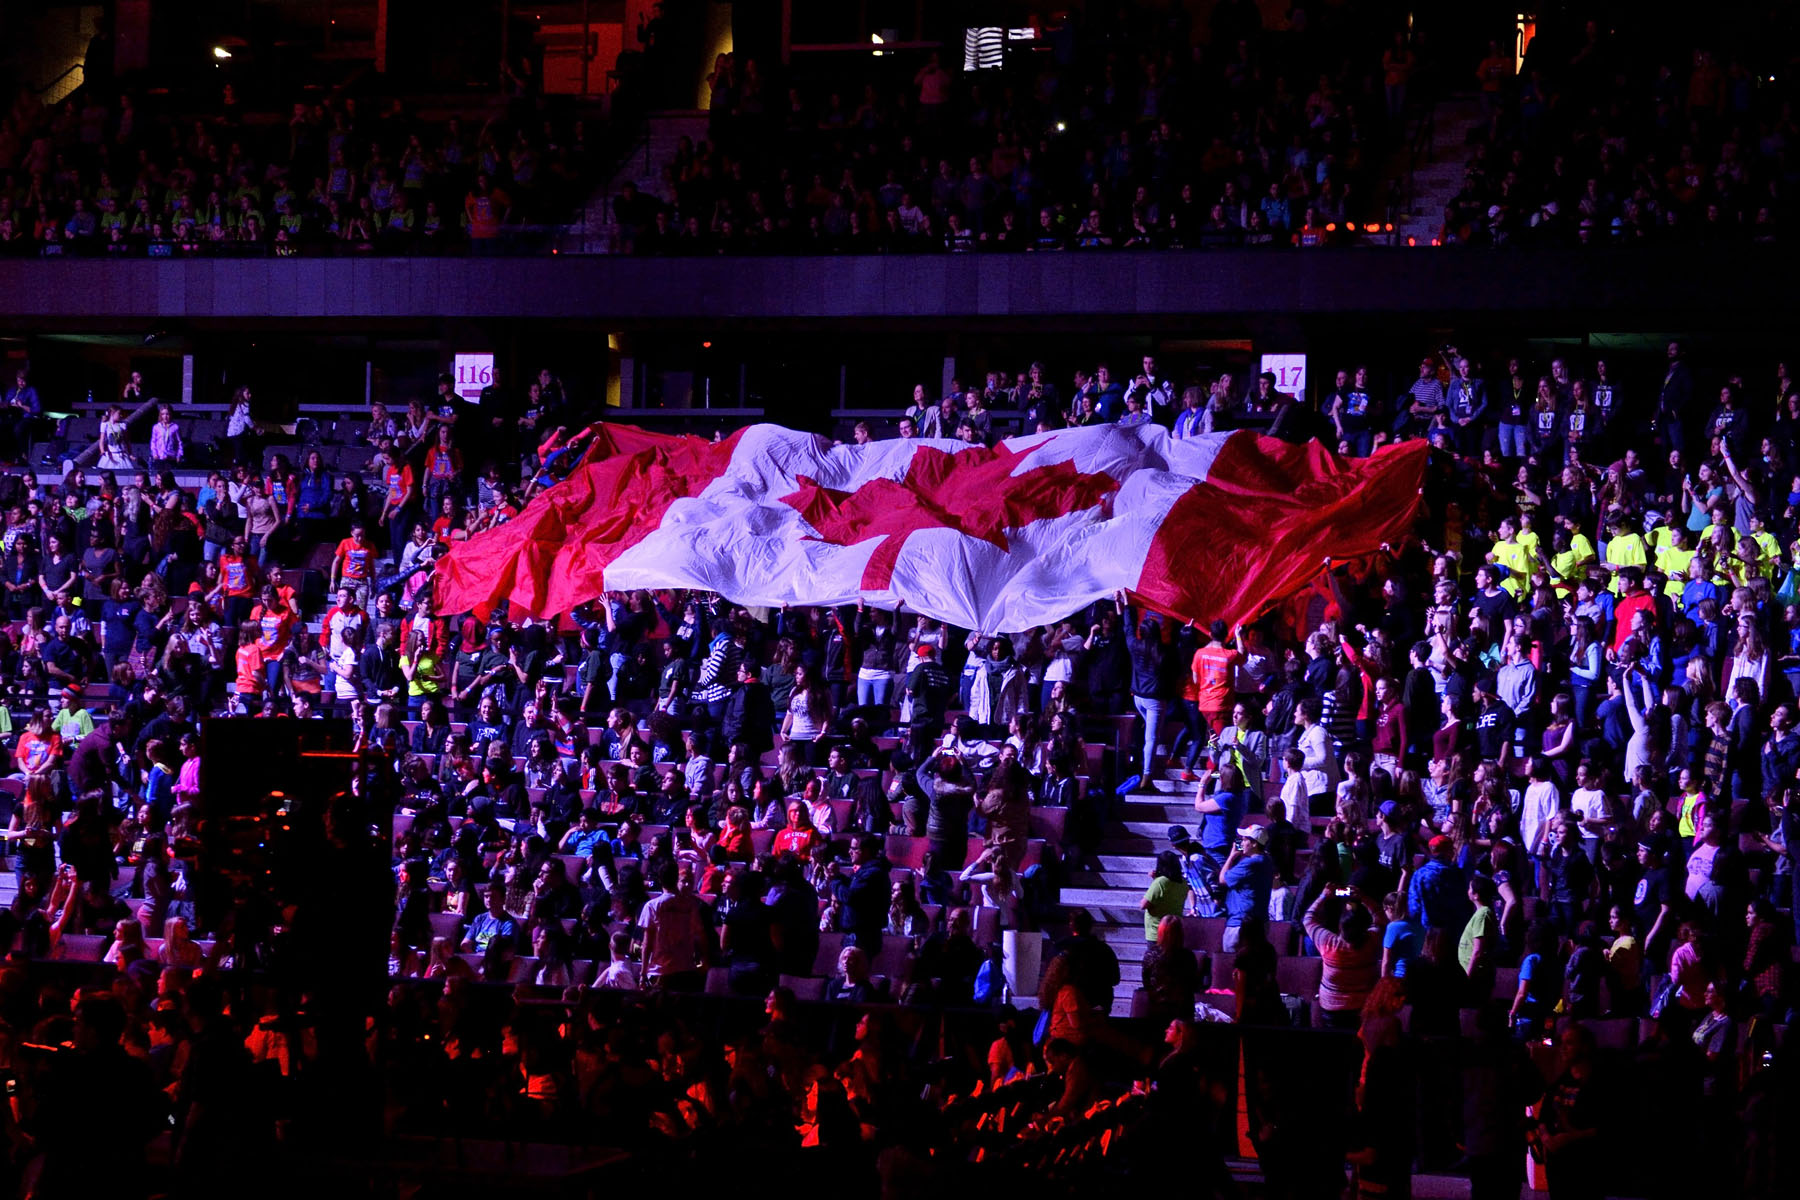 Before the Governor General's appearance on stage, a giant Canadian flag was past along by the crowd around the arena.